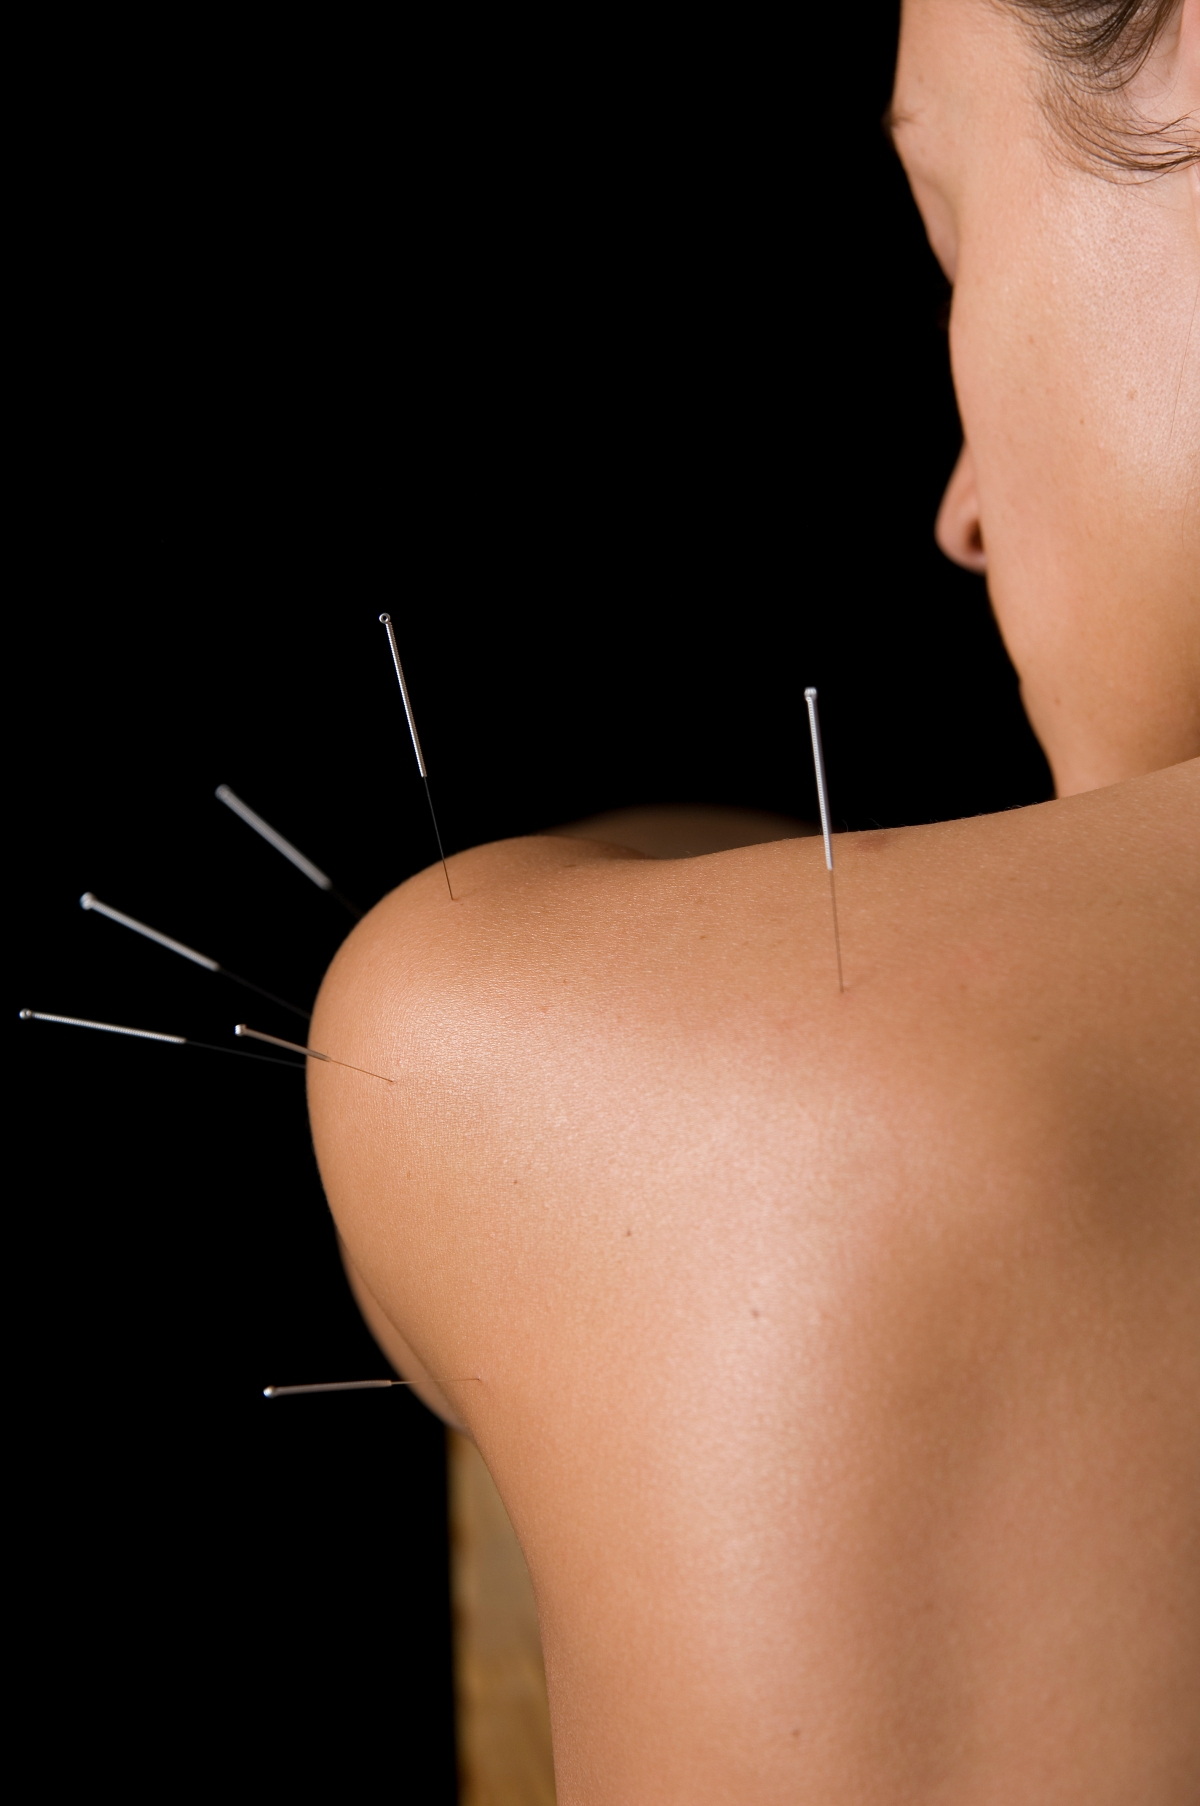 Acupuncture – what is it?